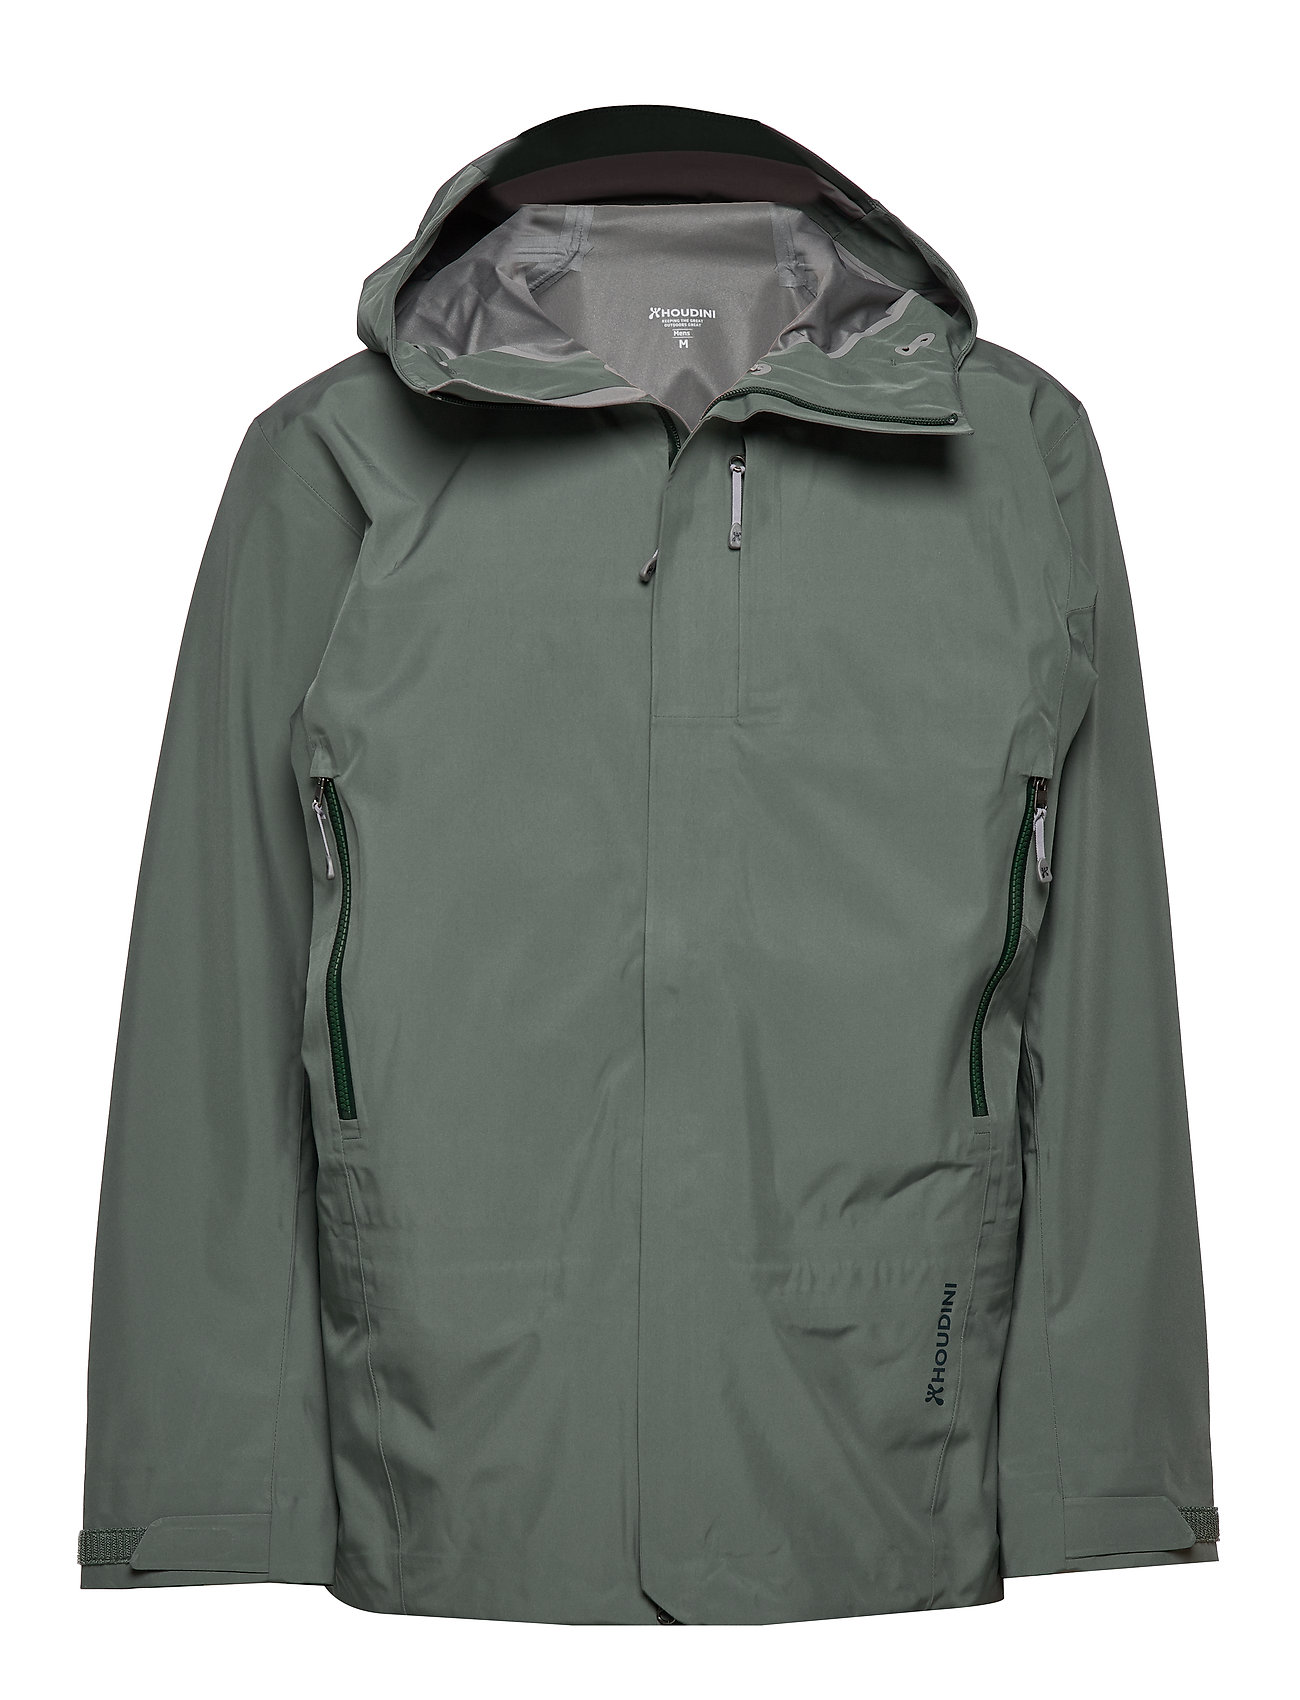 Houdini M's D Jacket - STORM GREEN